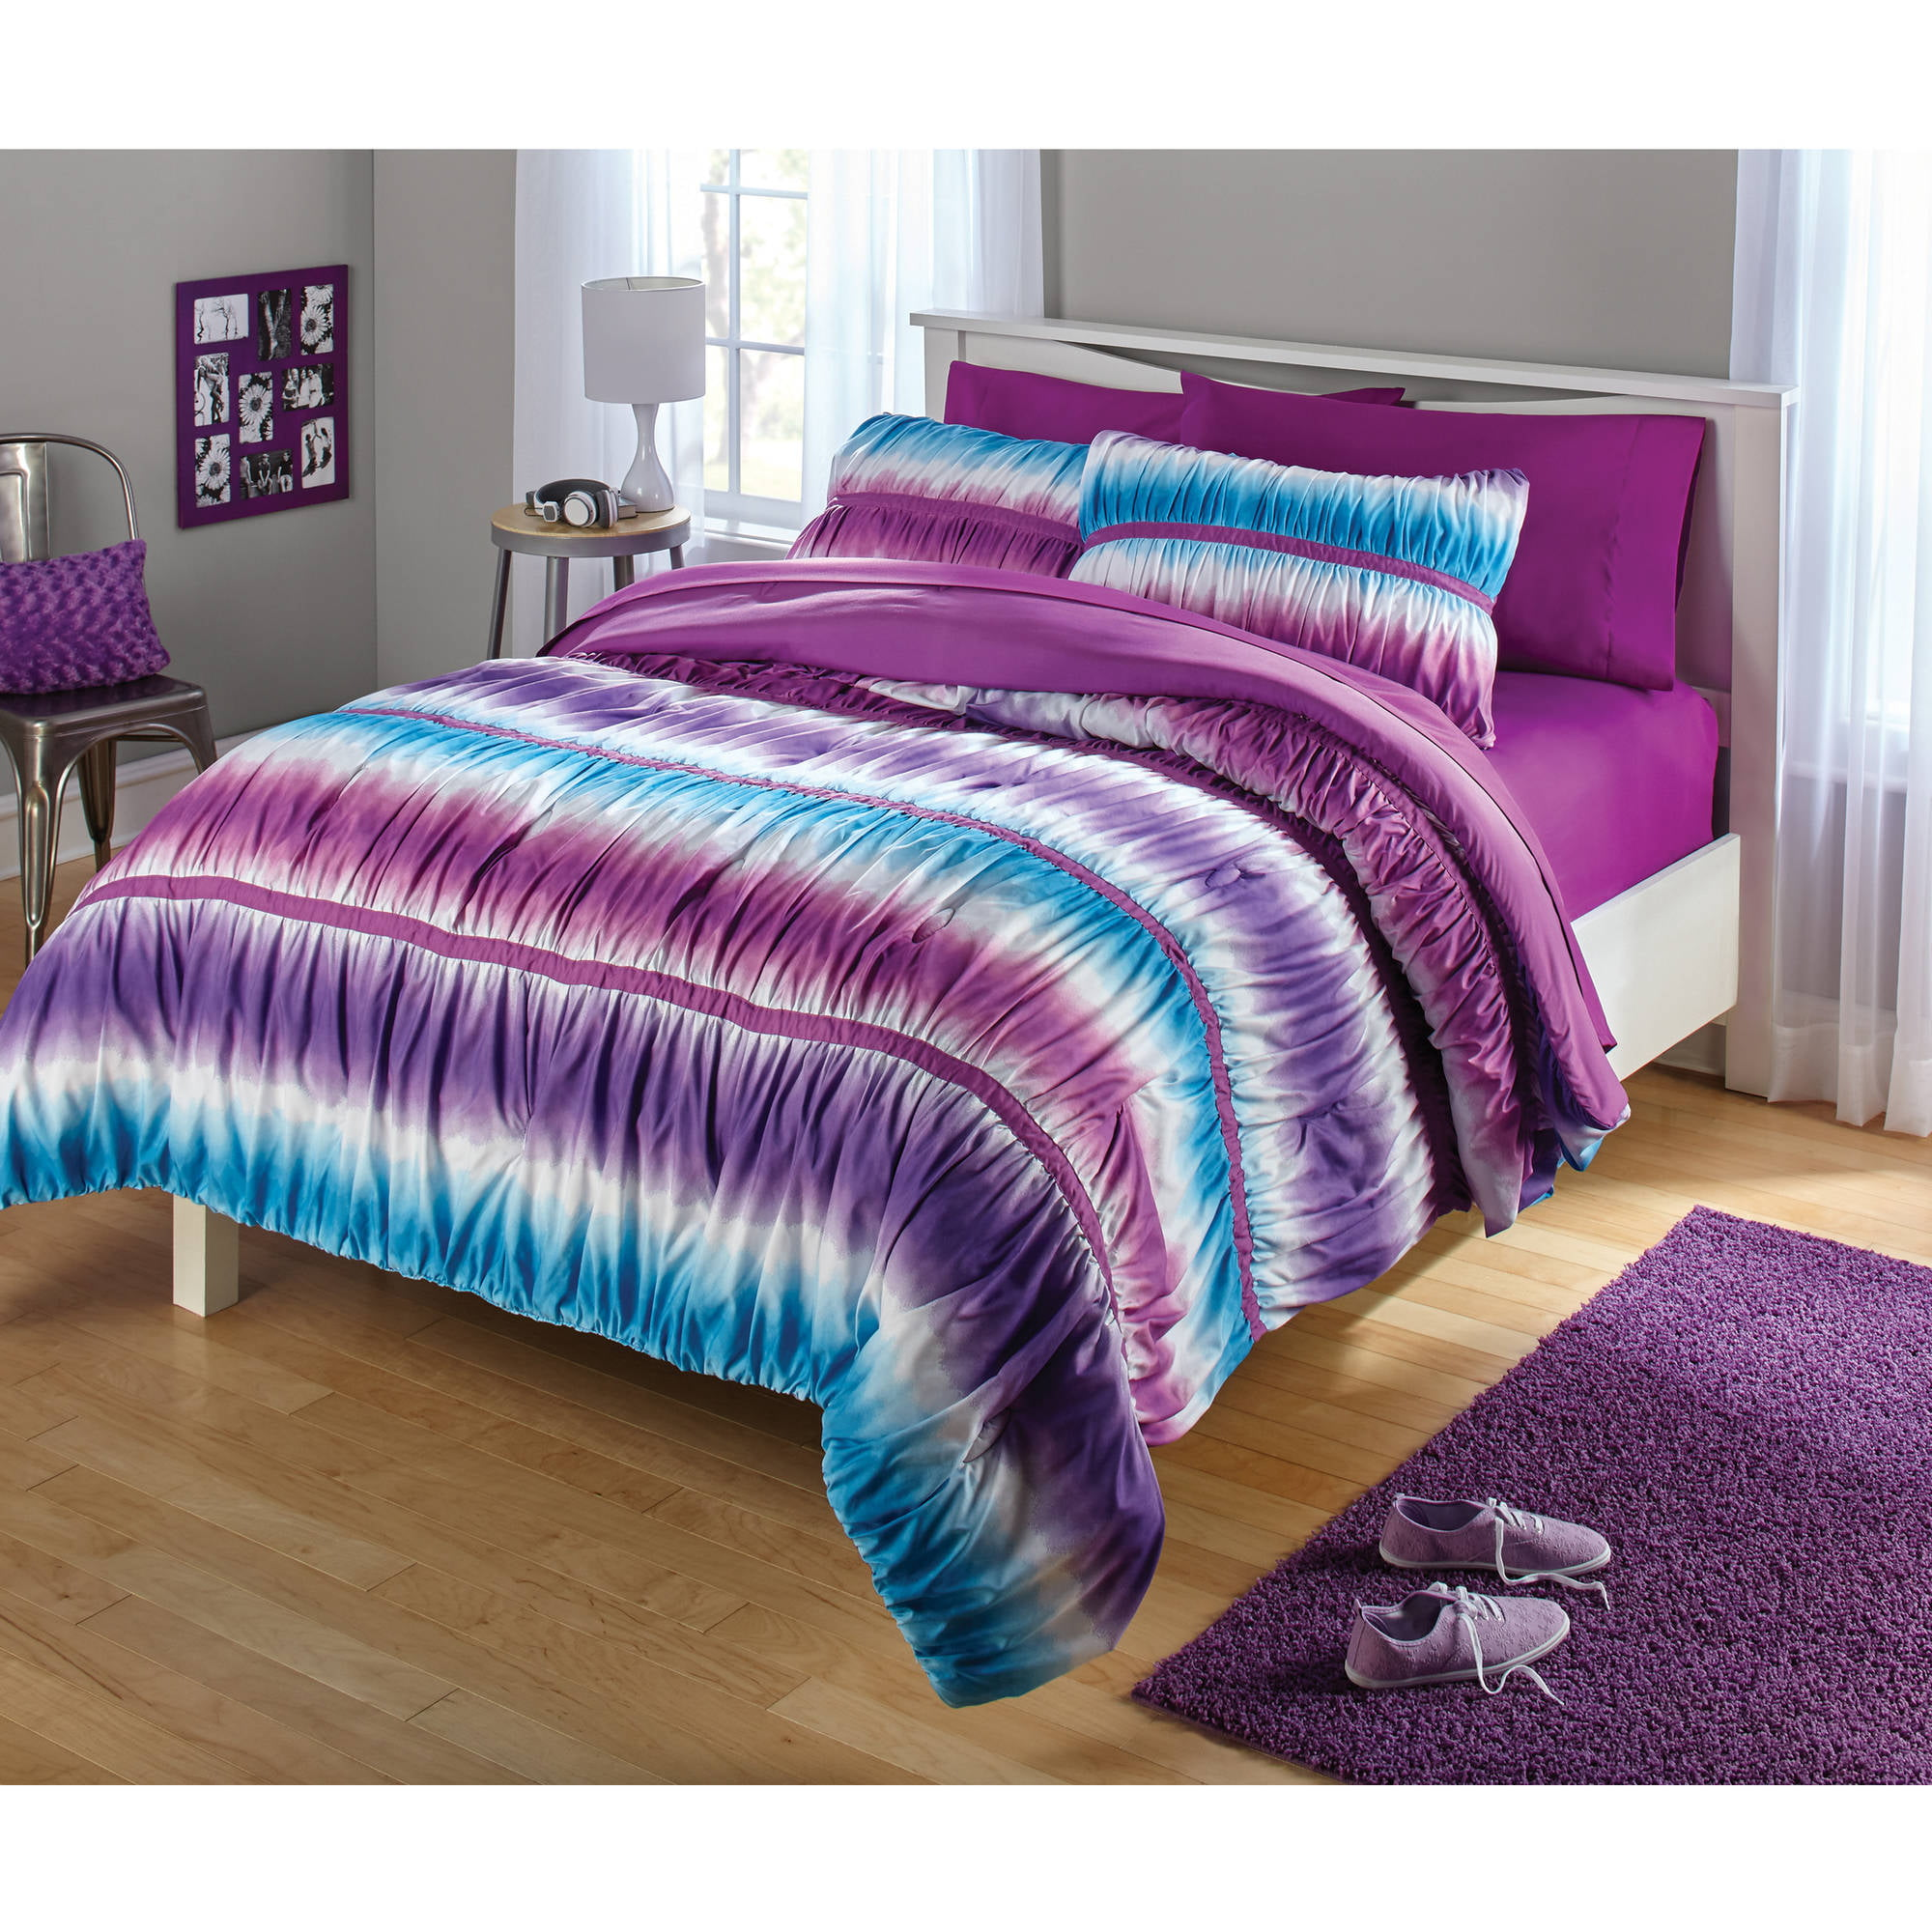 Purple bedding for teenage girls - Your Zone Ruched Tie Dye Comforter Set